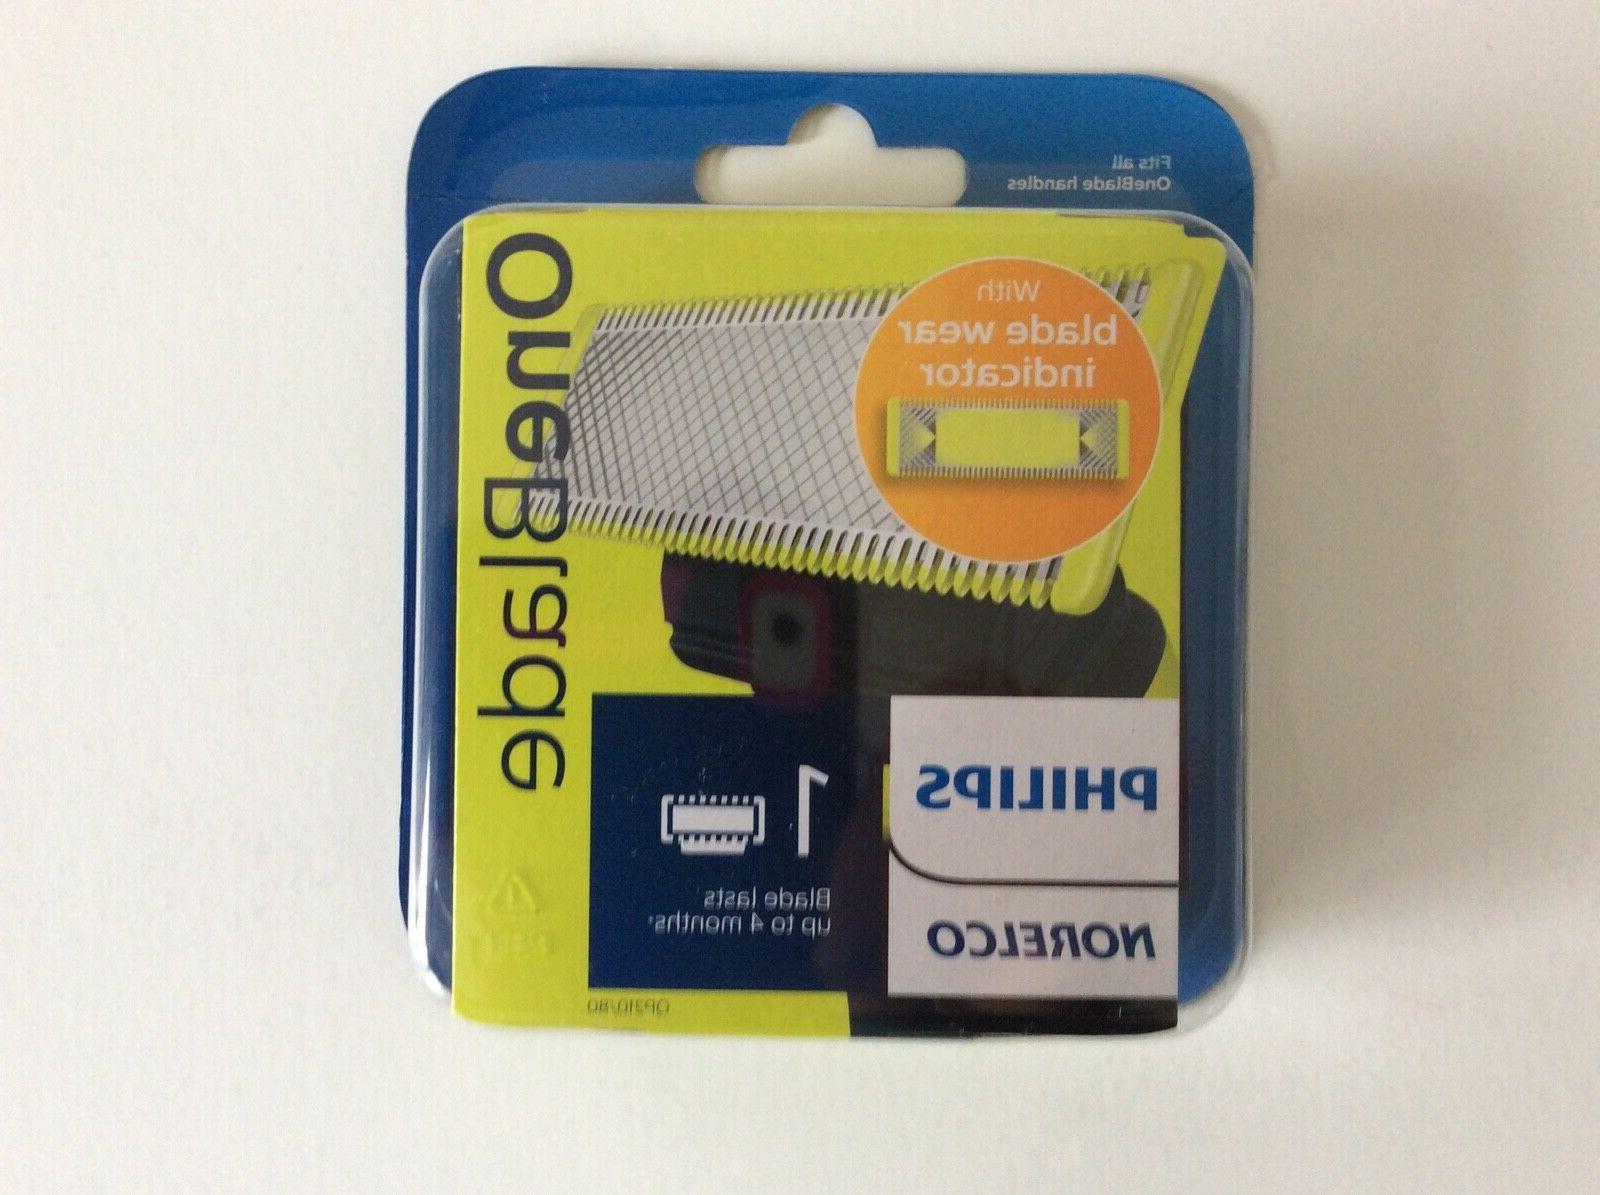 oneblade replacement blades 1 pack qp210 80